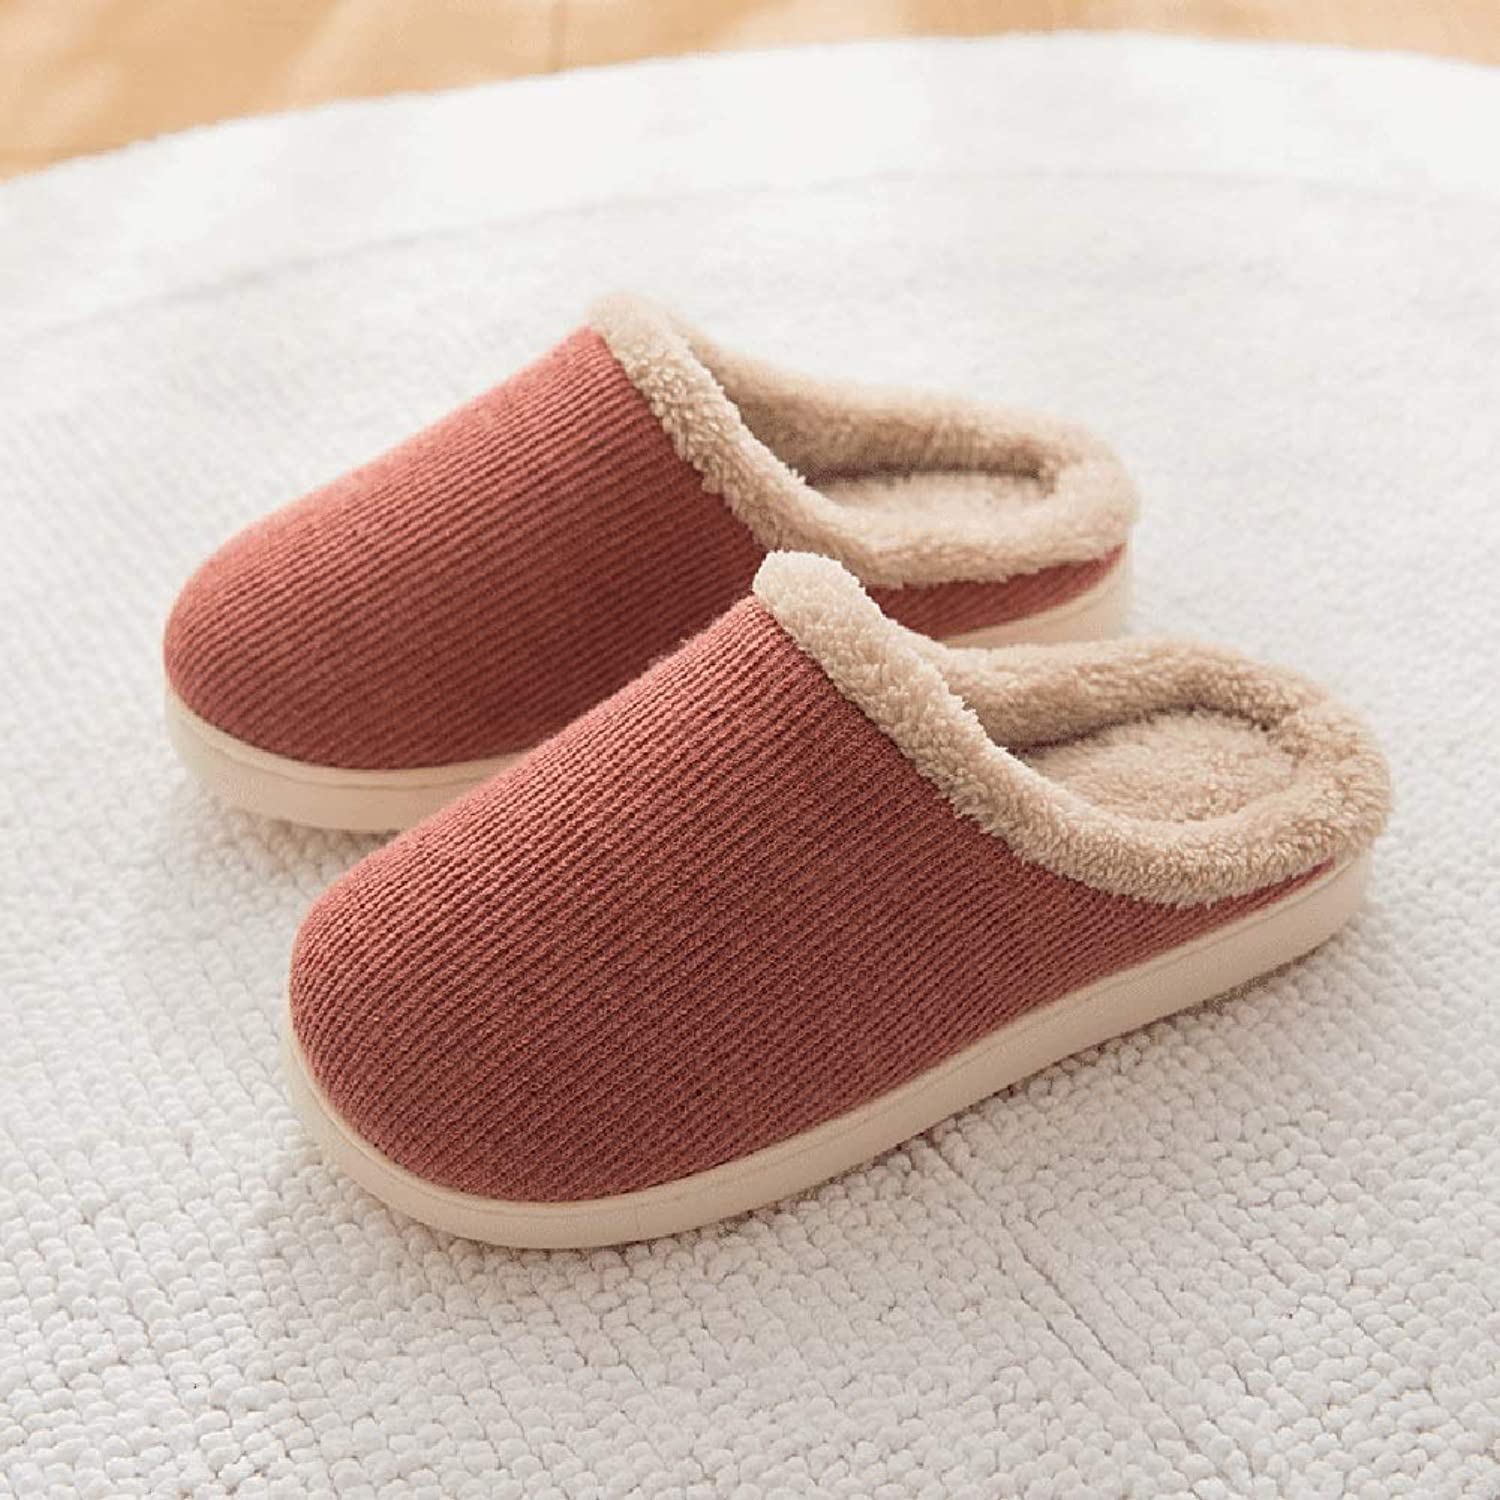 Cotton Slippers Japanese-Style Autumn and Winter Men and Women Indoor Keep Warm Short Plush EVA Light Non-Slip Wooden Floor Knitted Fabric Short Plush Lining (color   RED, Size   37-38)